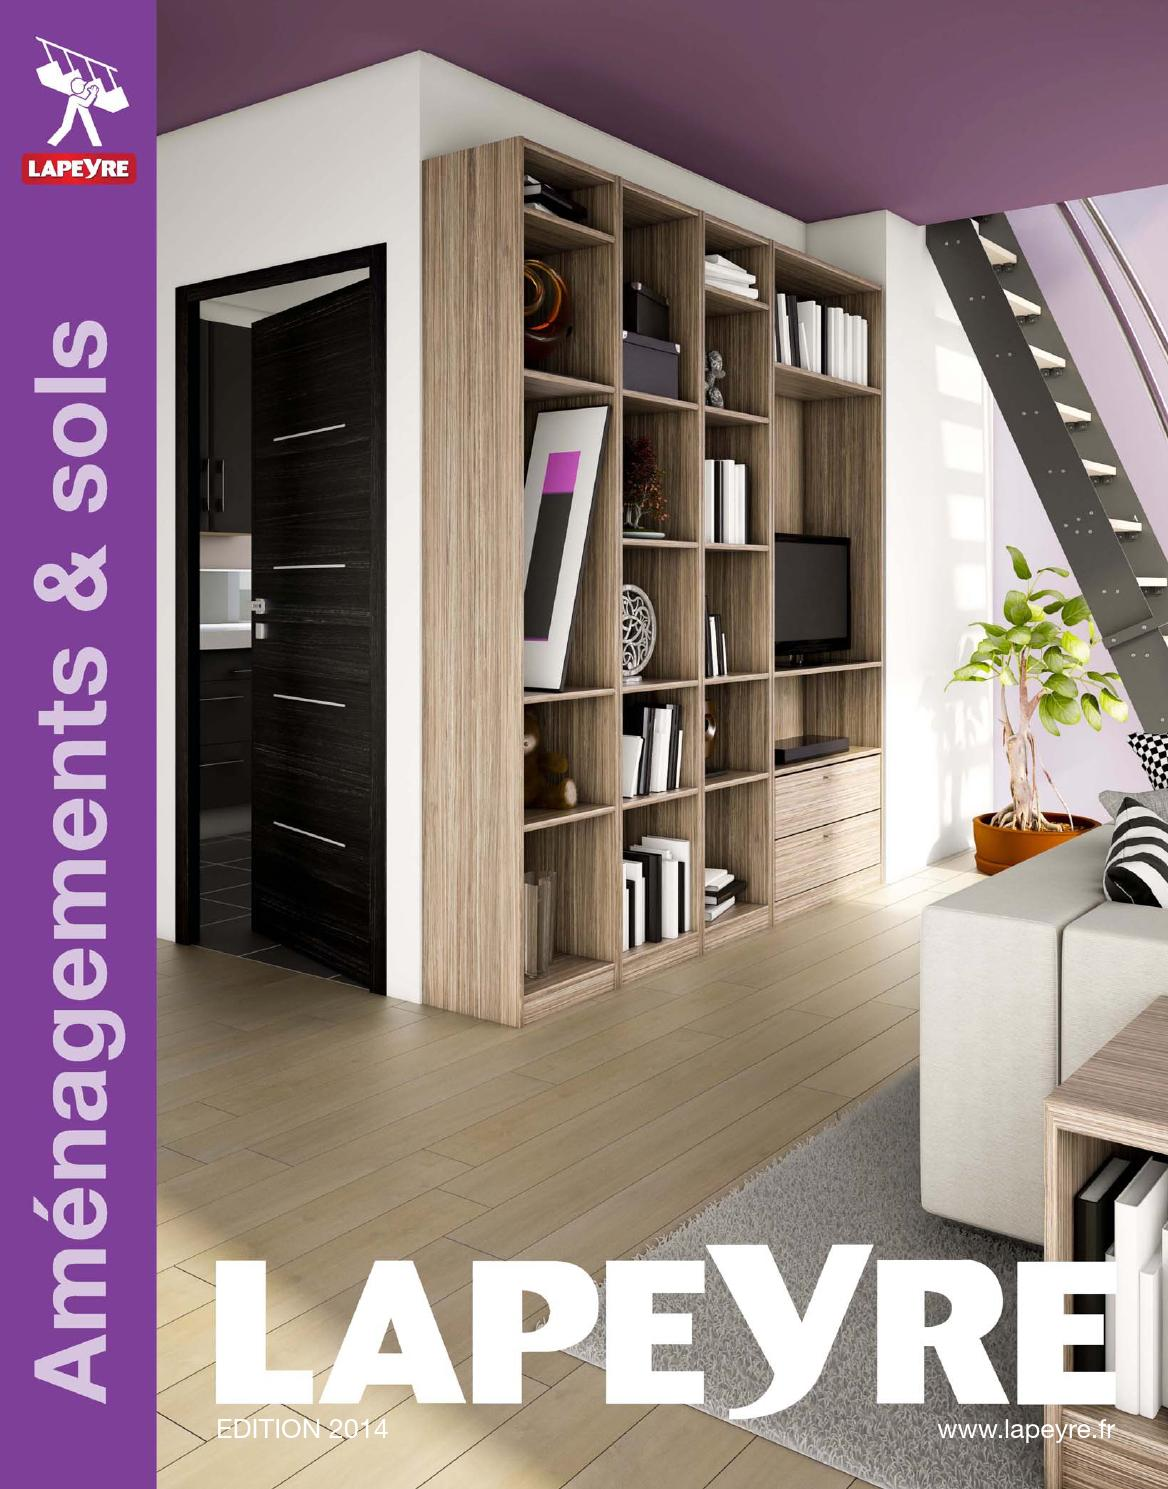 Porte Chene Lapeyre Catalogue Lapeyre Aménagements Sols 2014 By Joe Monroe Issuu